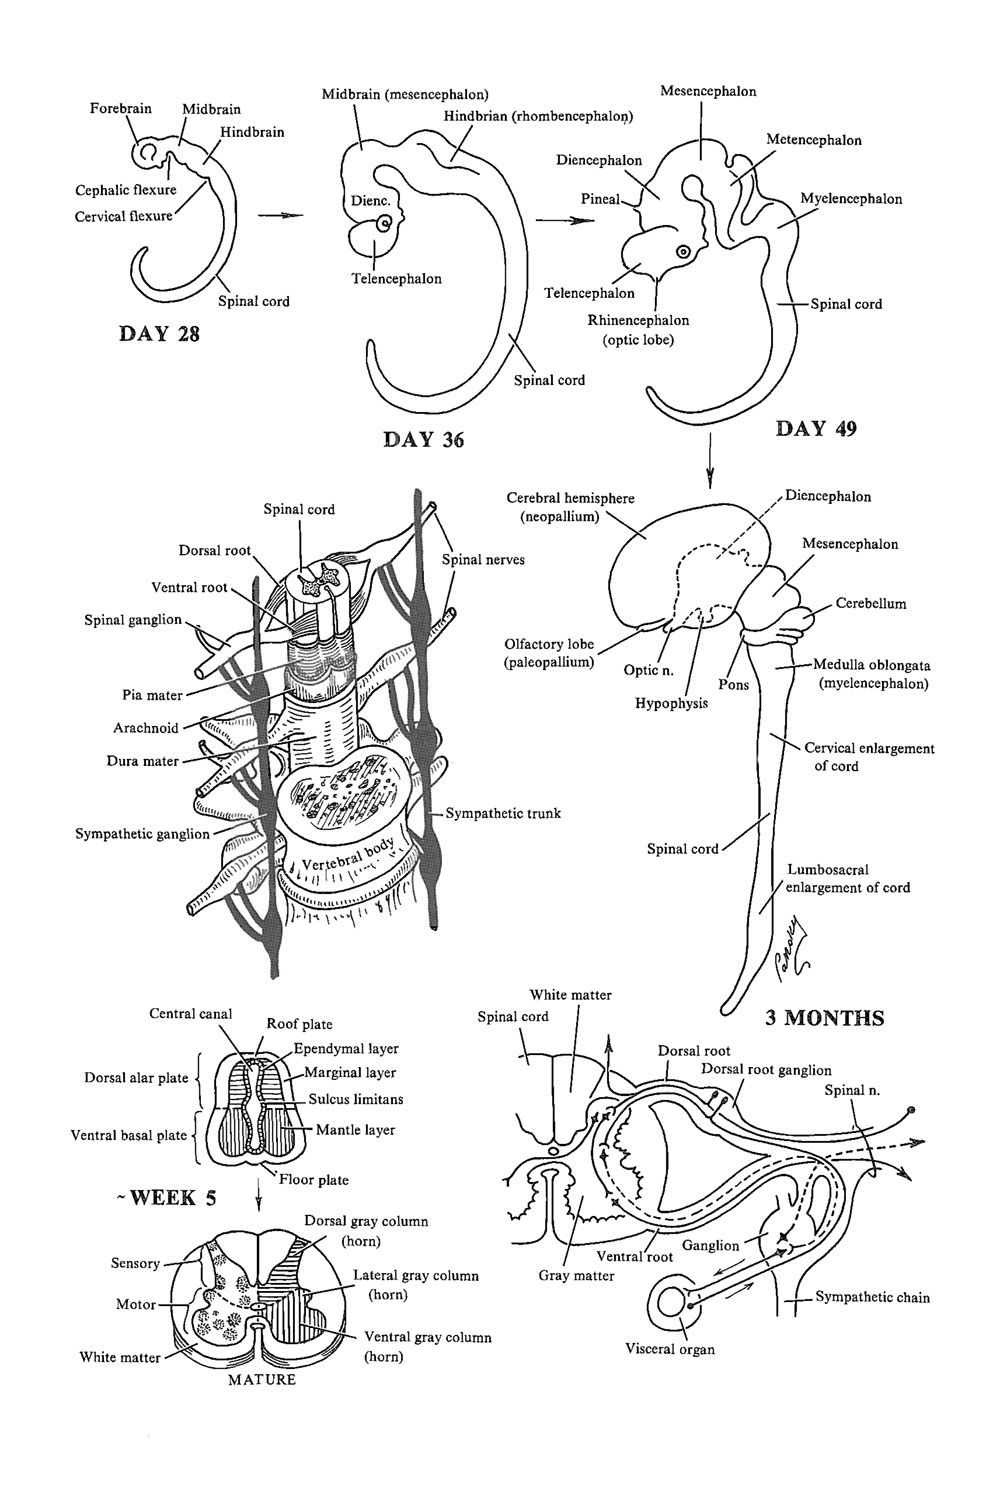 Chapter 140. General Considerations Related to The Anatomy